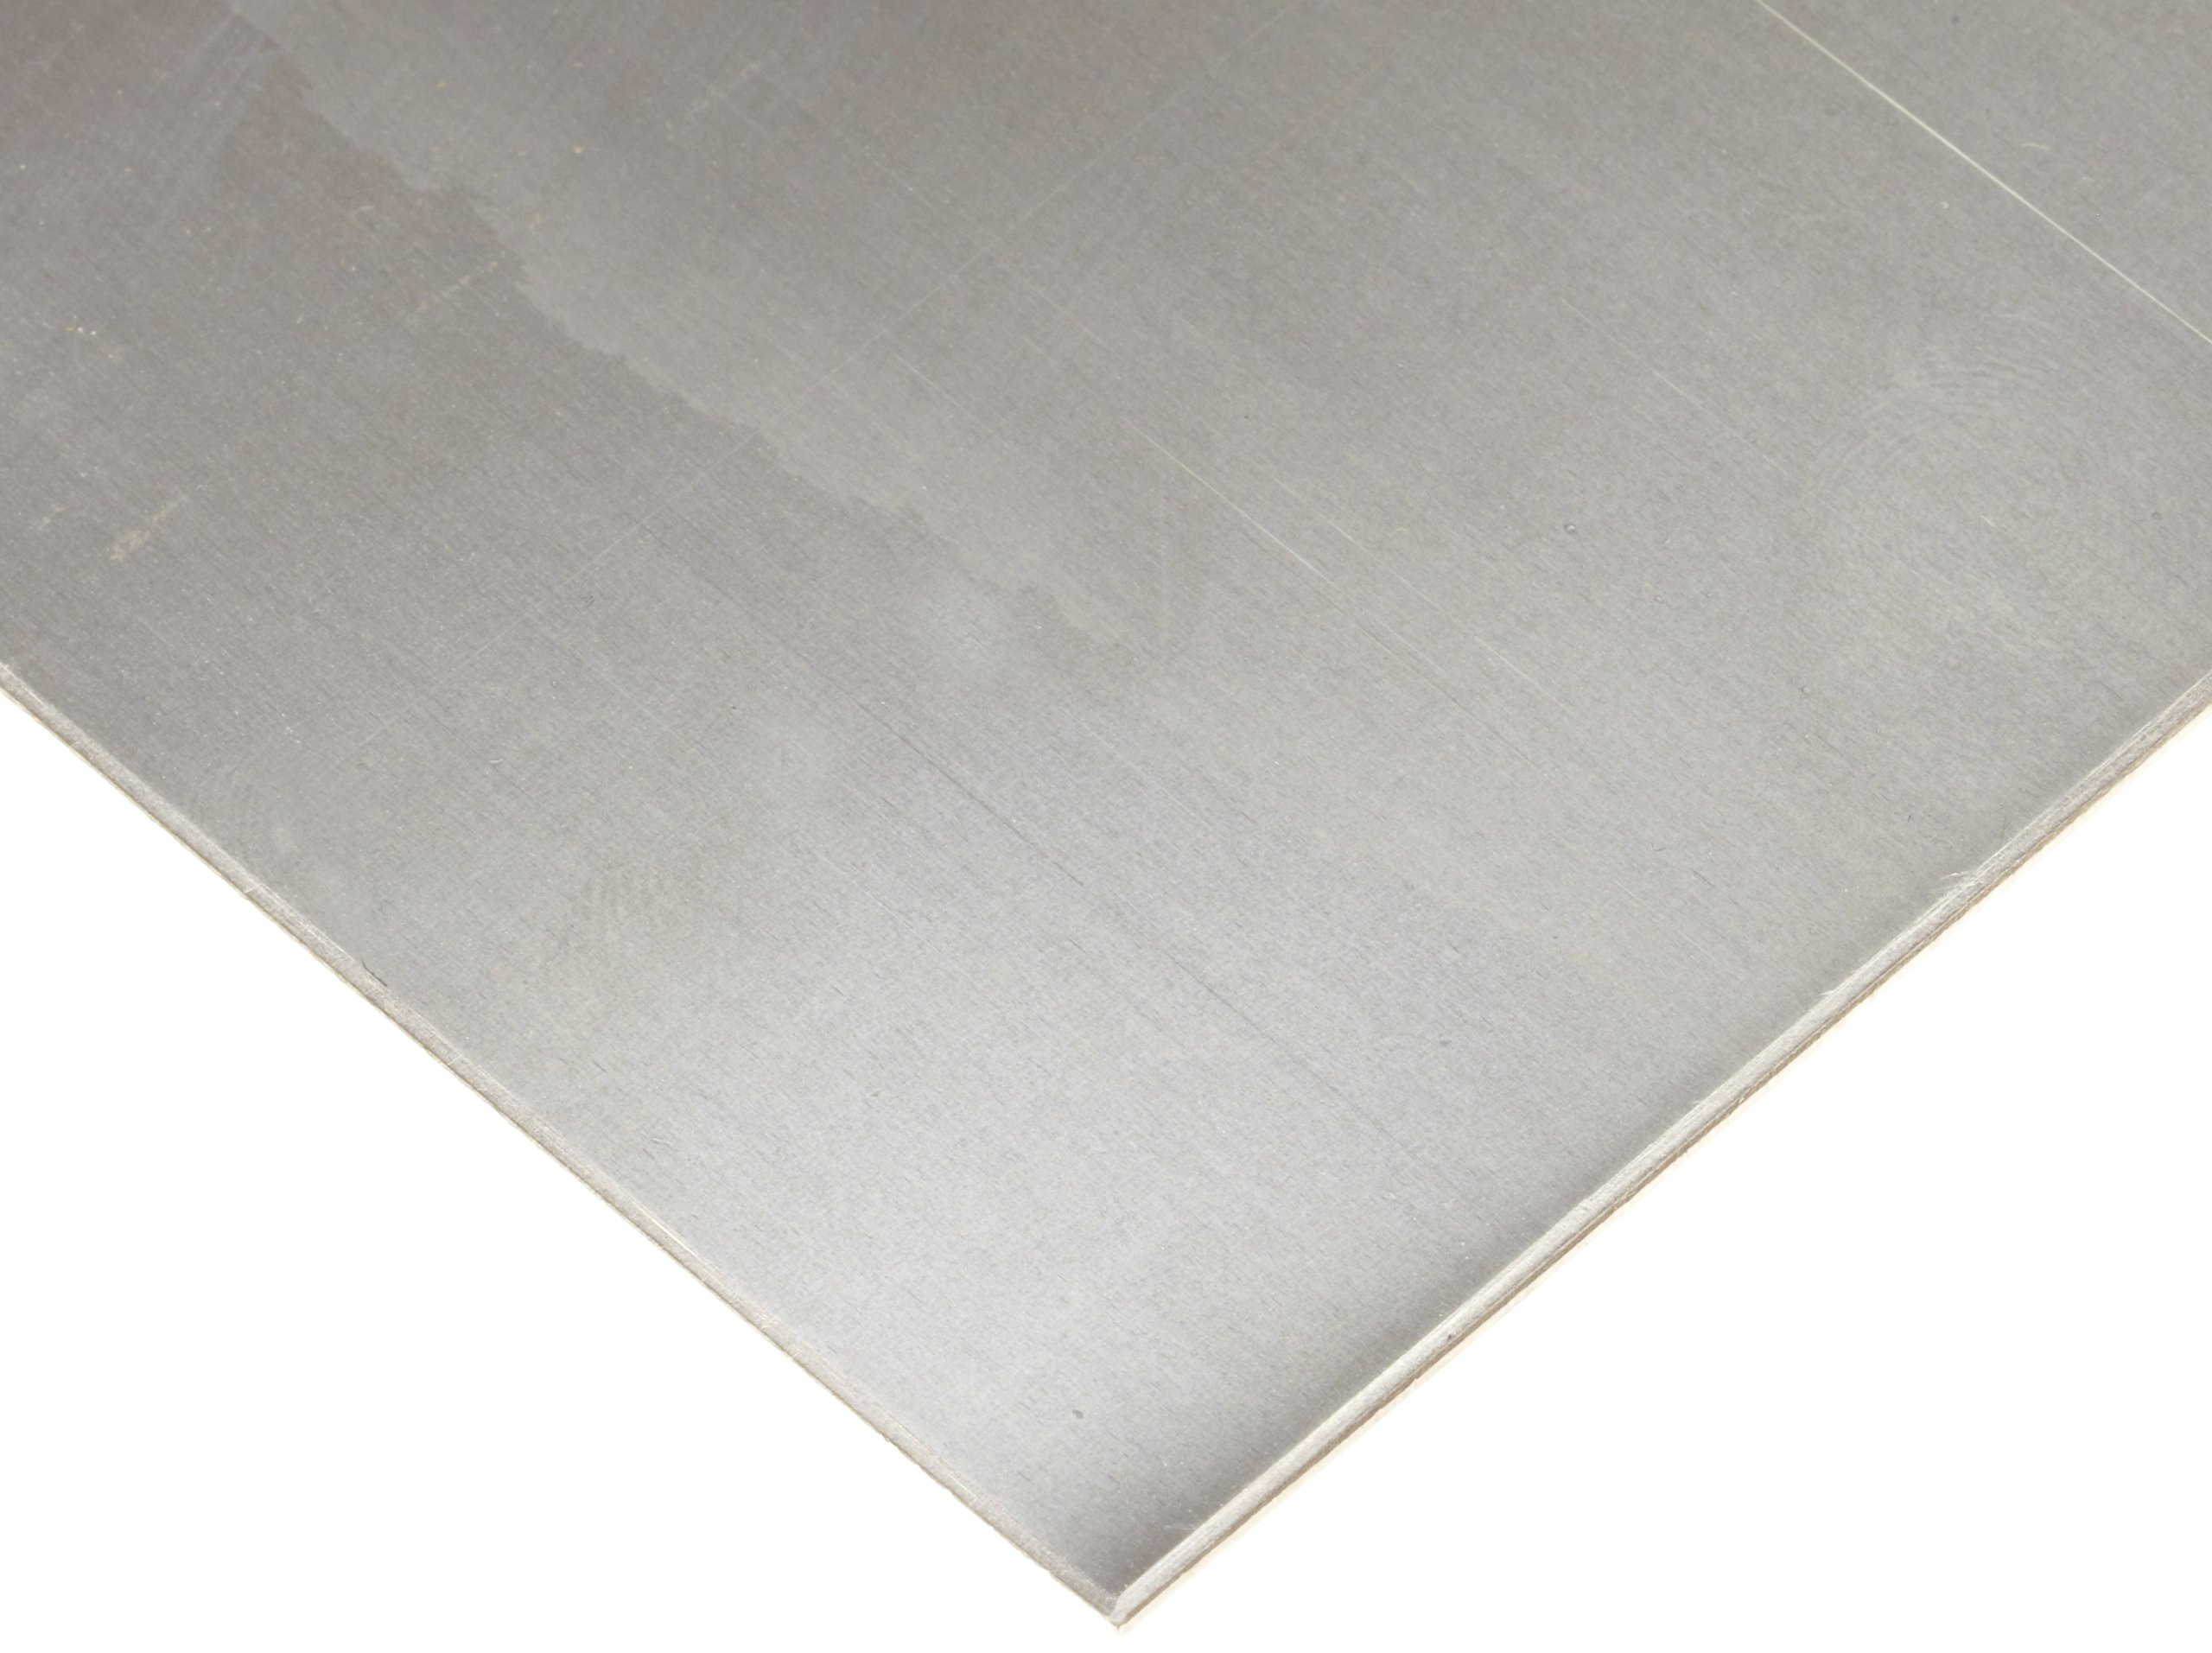 718 Nickel Sheet, Unpolished (Mill) Finish, Meets AMS 5596, ASTM B 670, 0.017'' Thickness, 12'' Width, 36'' Length by Small Parts